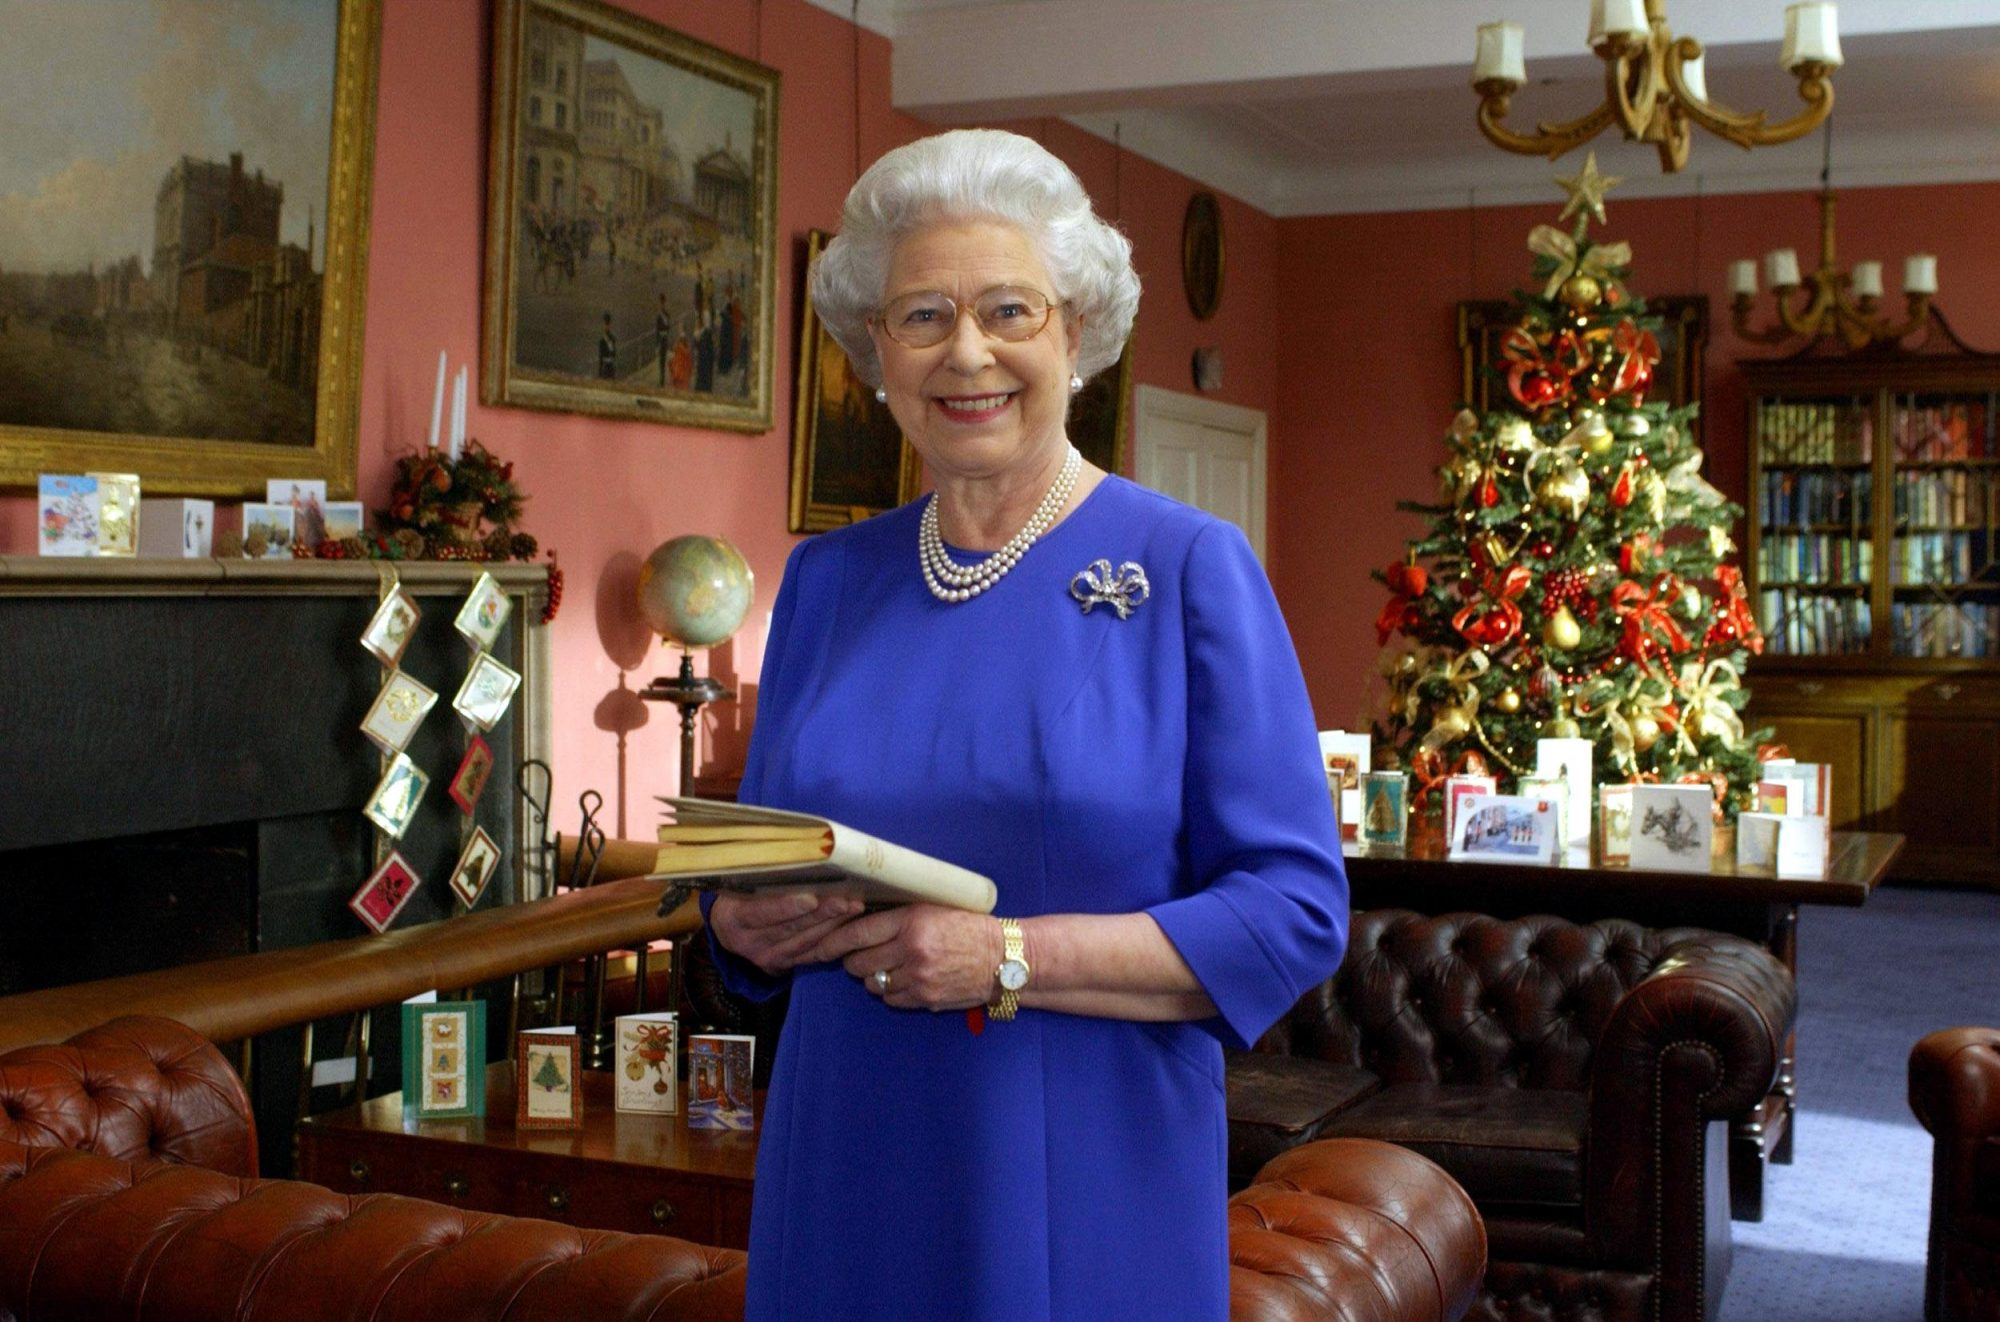 The Queen's 2003 Christmas Broadcast